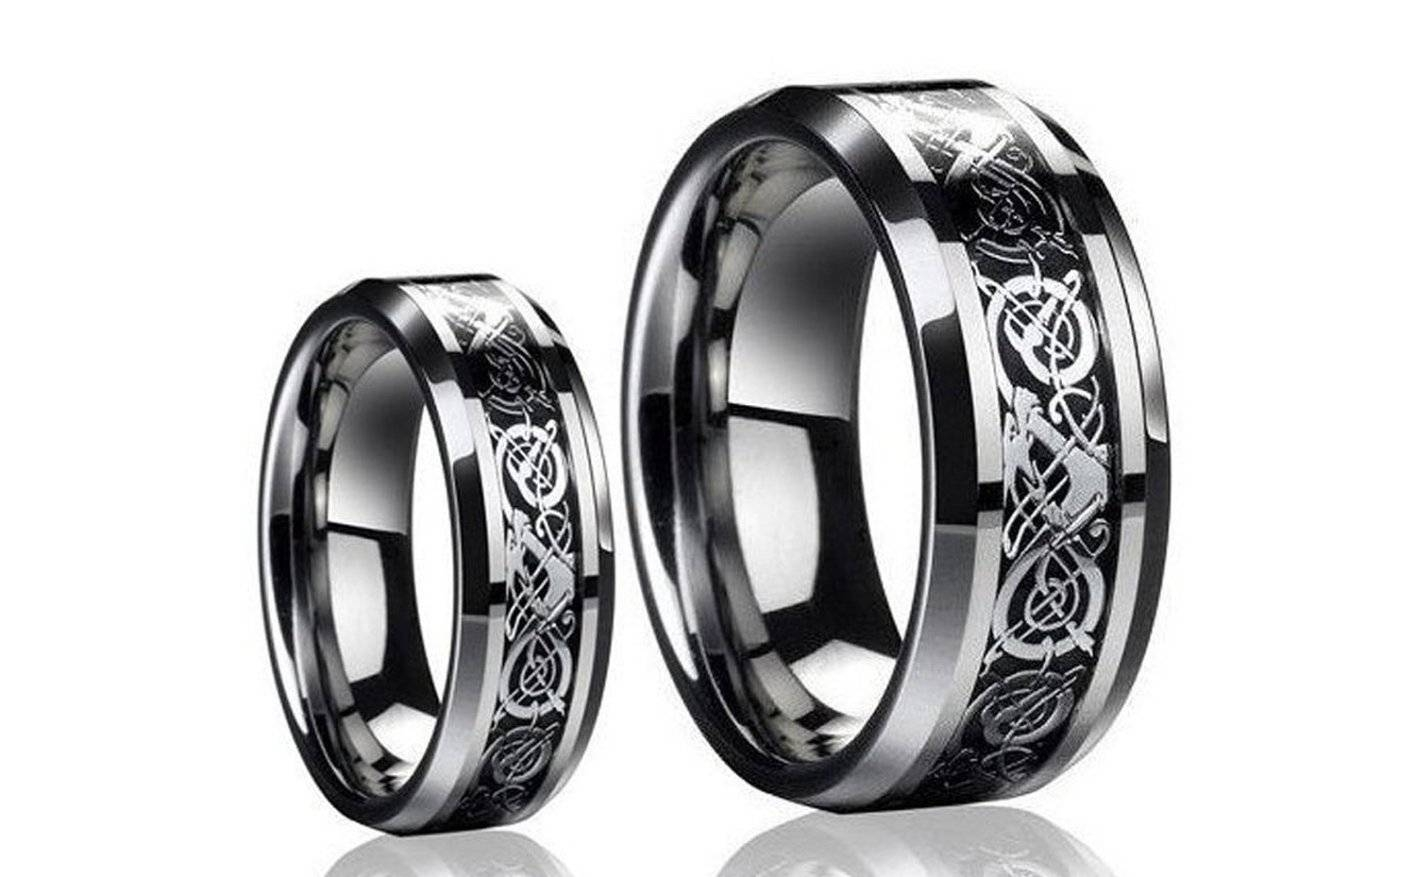 Wedding Rings : Mens Wedding Rings Wonderful Wedding Rings Walmart Pertaining To Walmart Wedding Bands For Men (View 13 of 15)